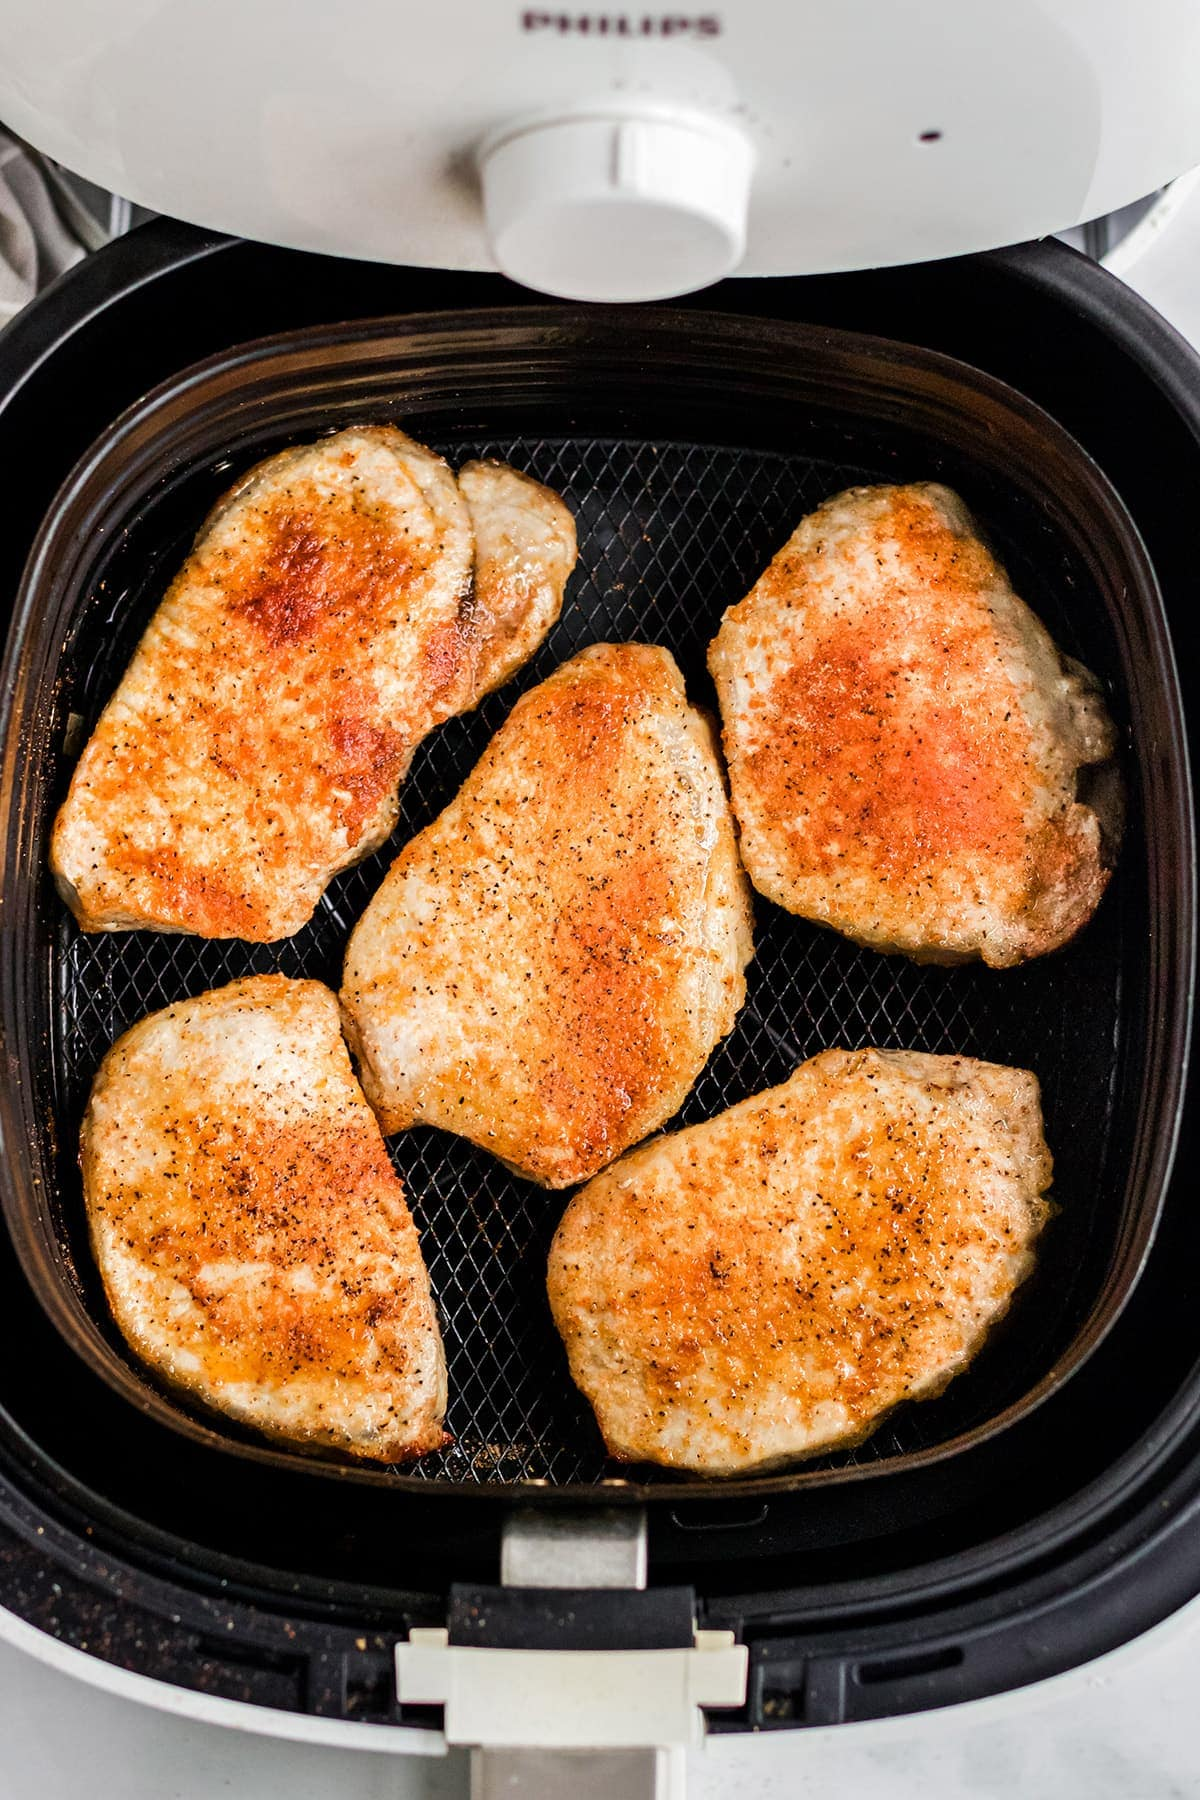 air fryer with pork chops in the basket